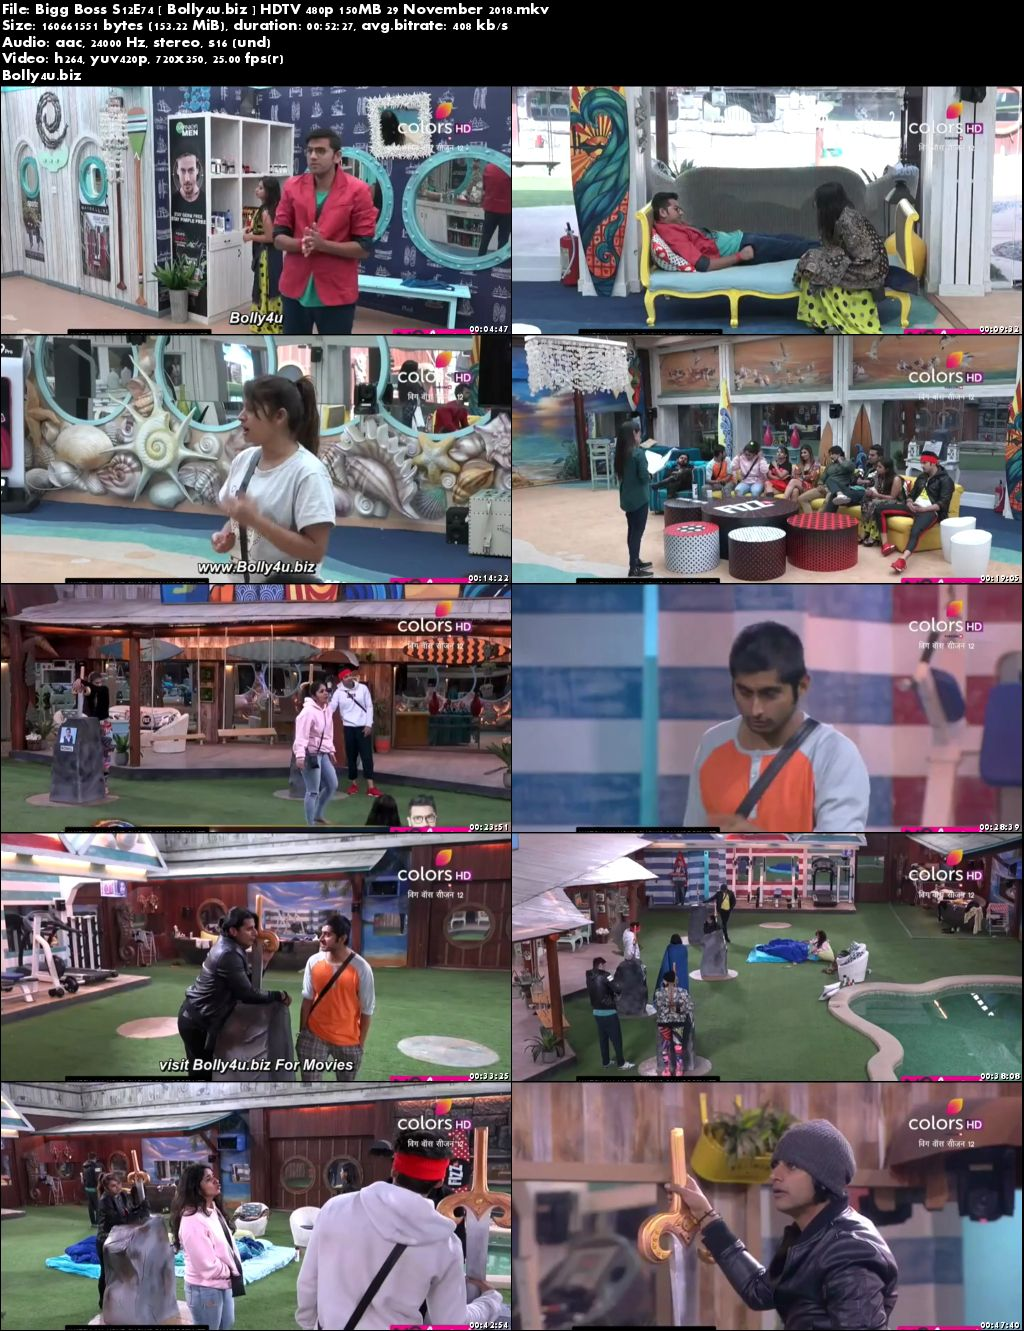 Bigg Boss S12E74 HDTV 480p 150MB 29 November 2018 Download